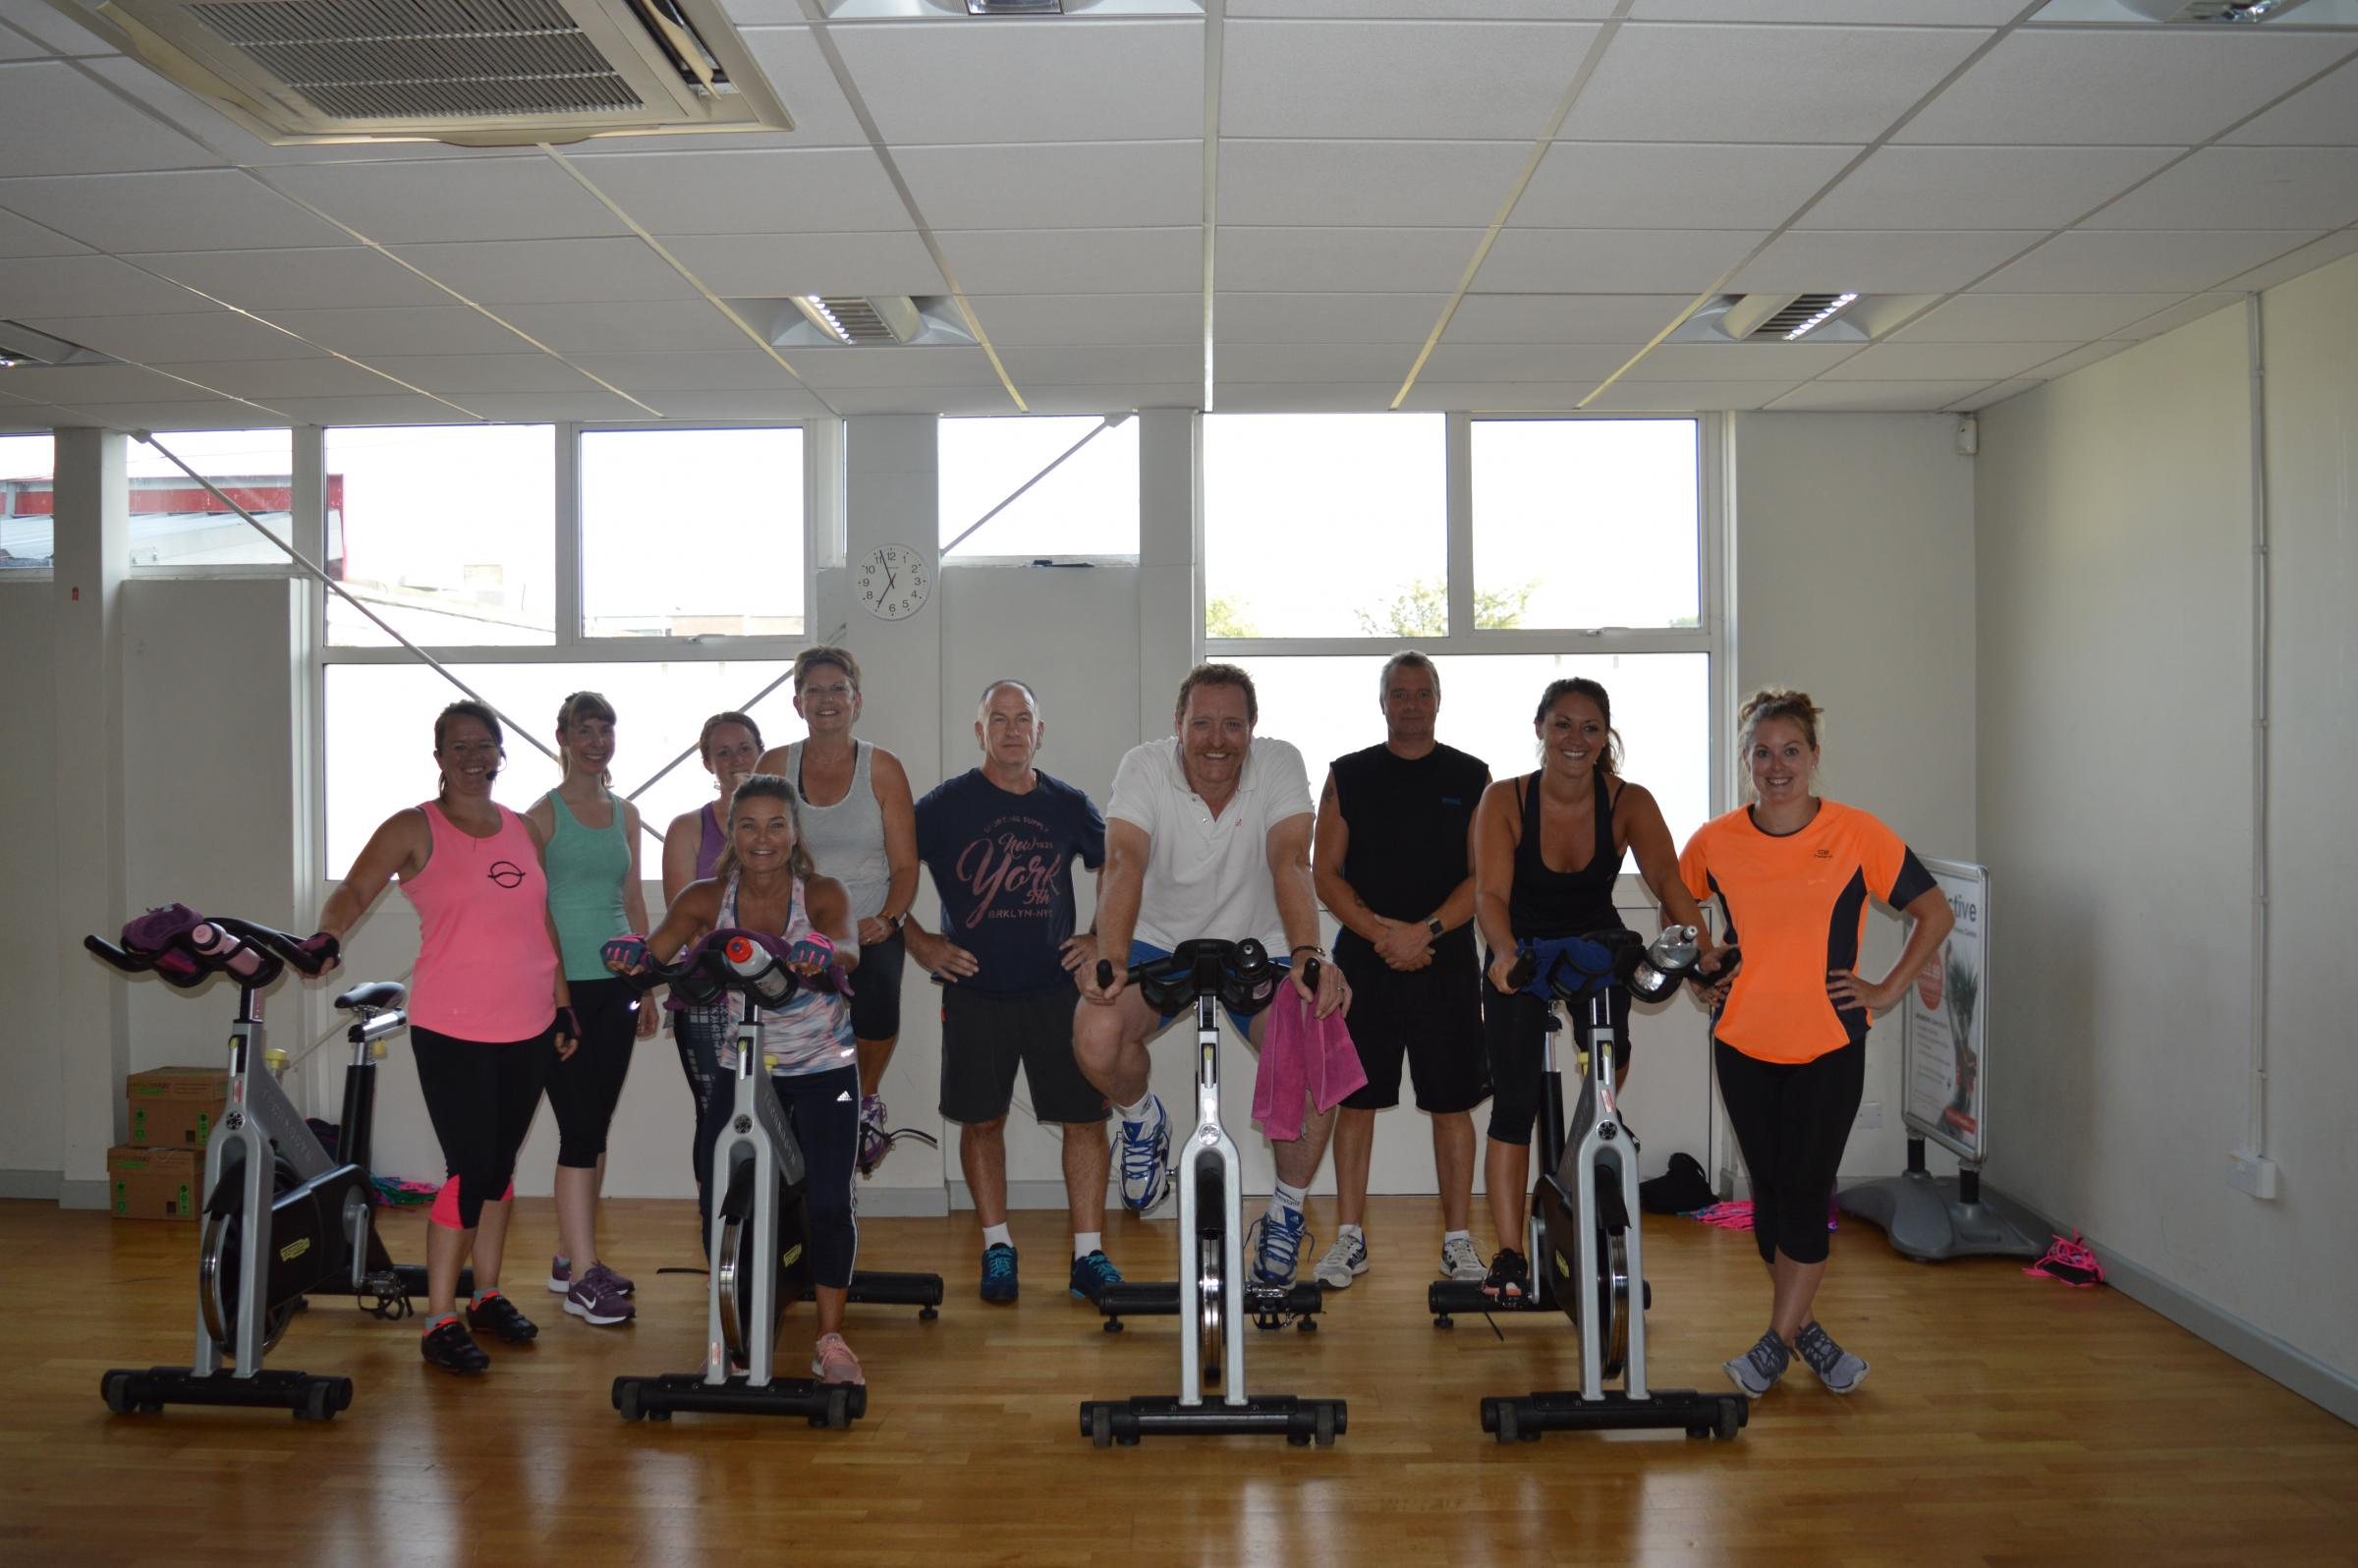 The spin class which took place in Durrington on Monday night to raise money and awareness for John Winskill